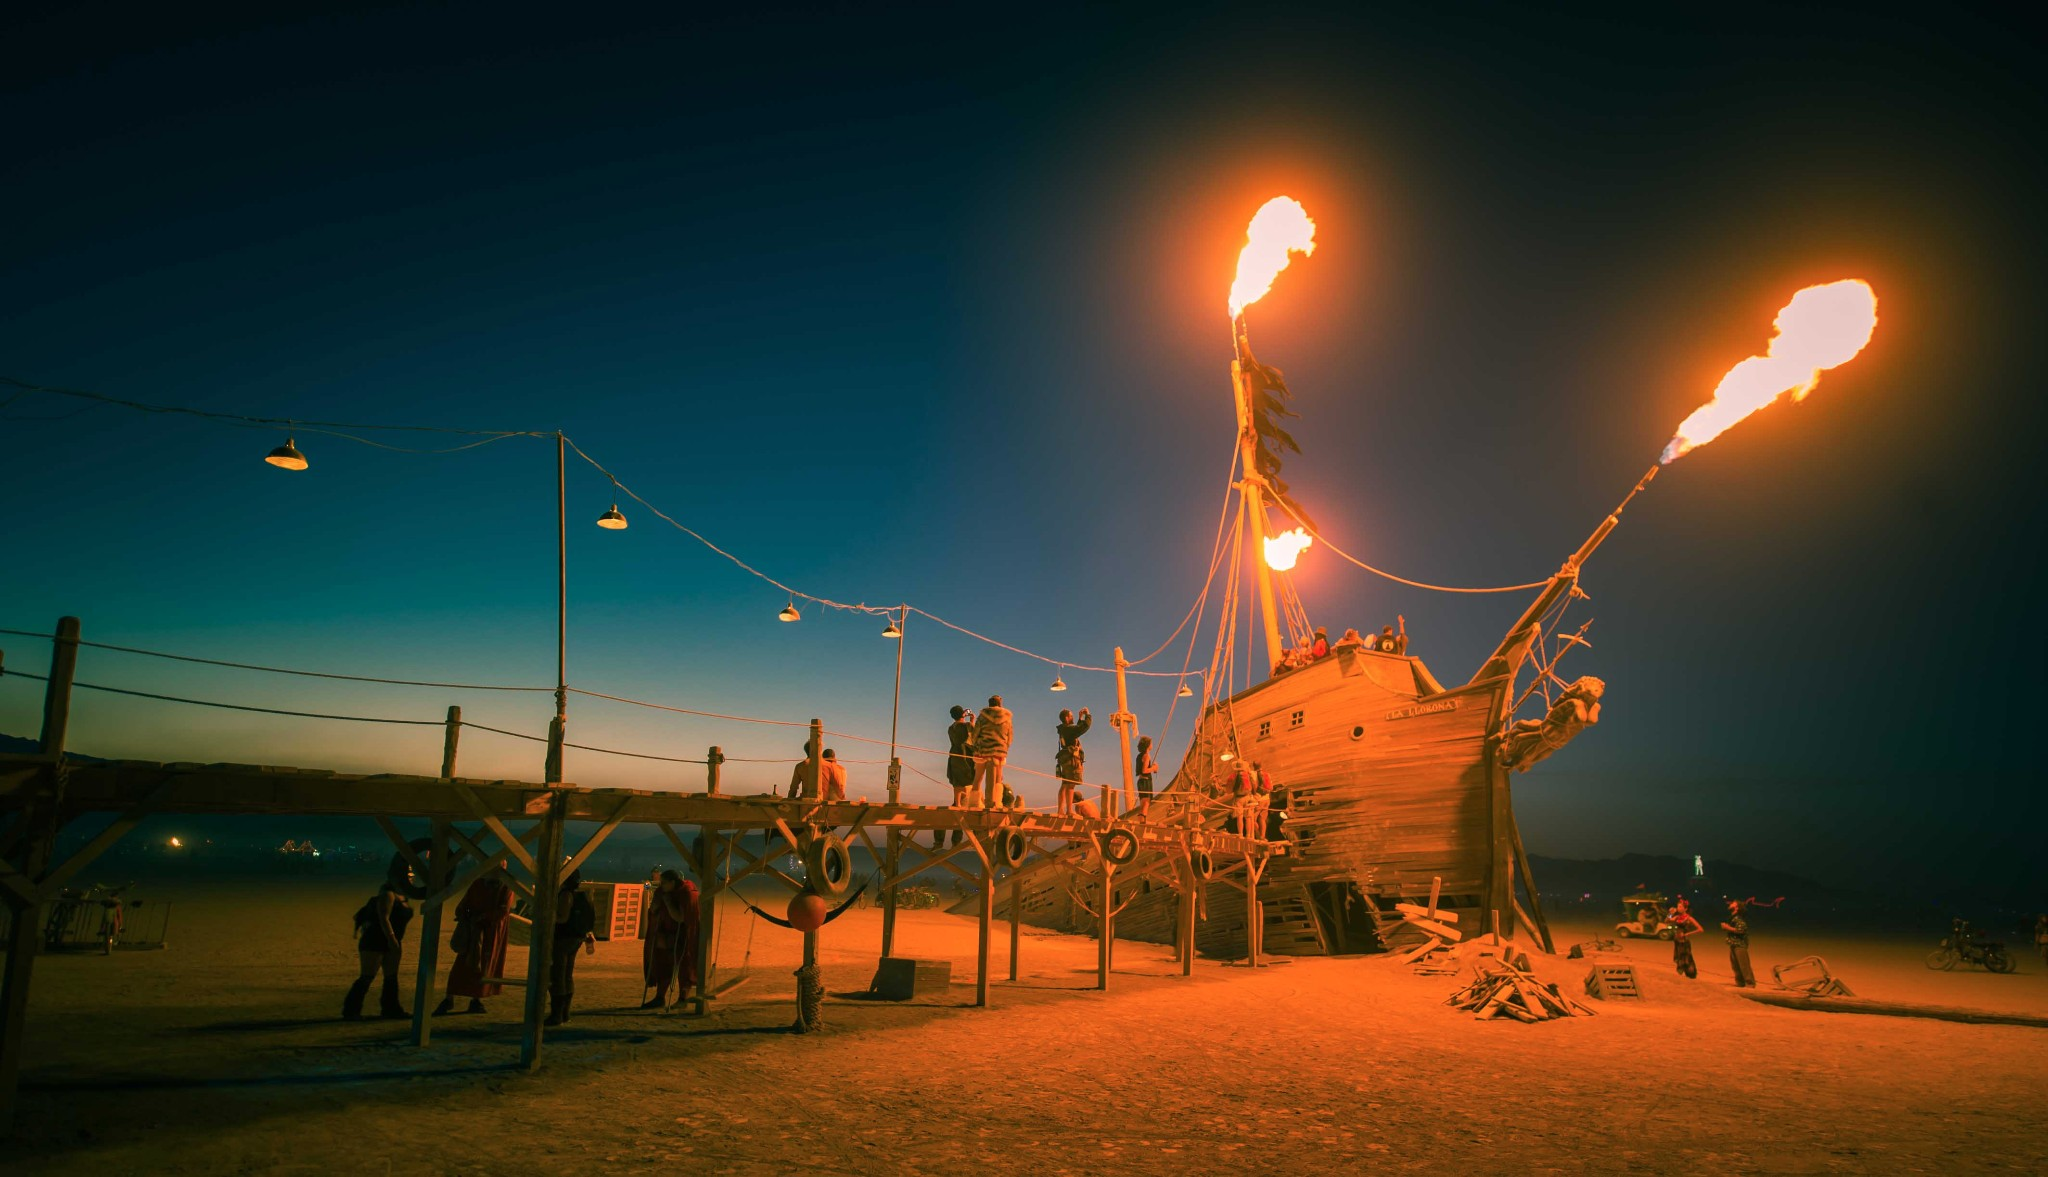 Photo: The old ship blasts ragged flames just as the sun sets in the desert...